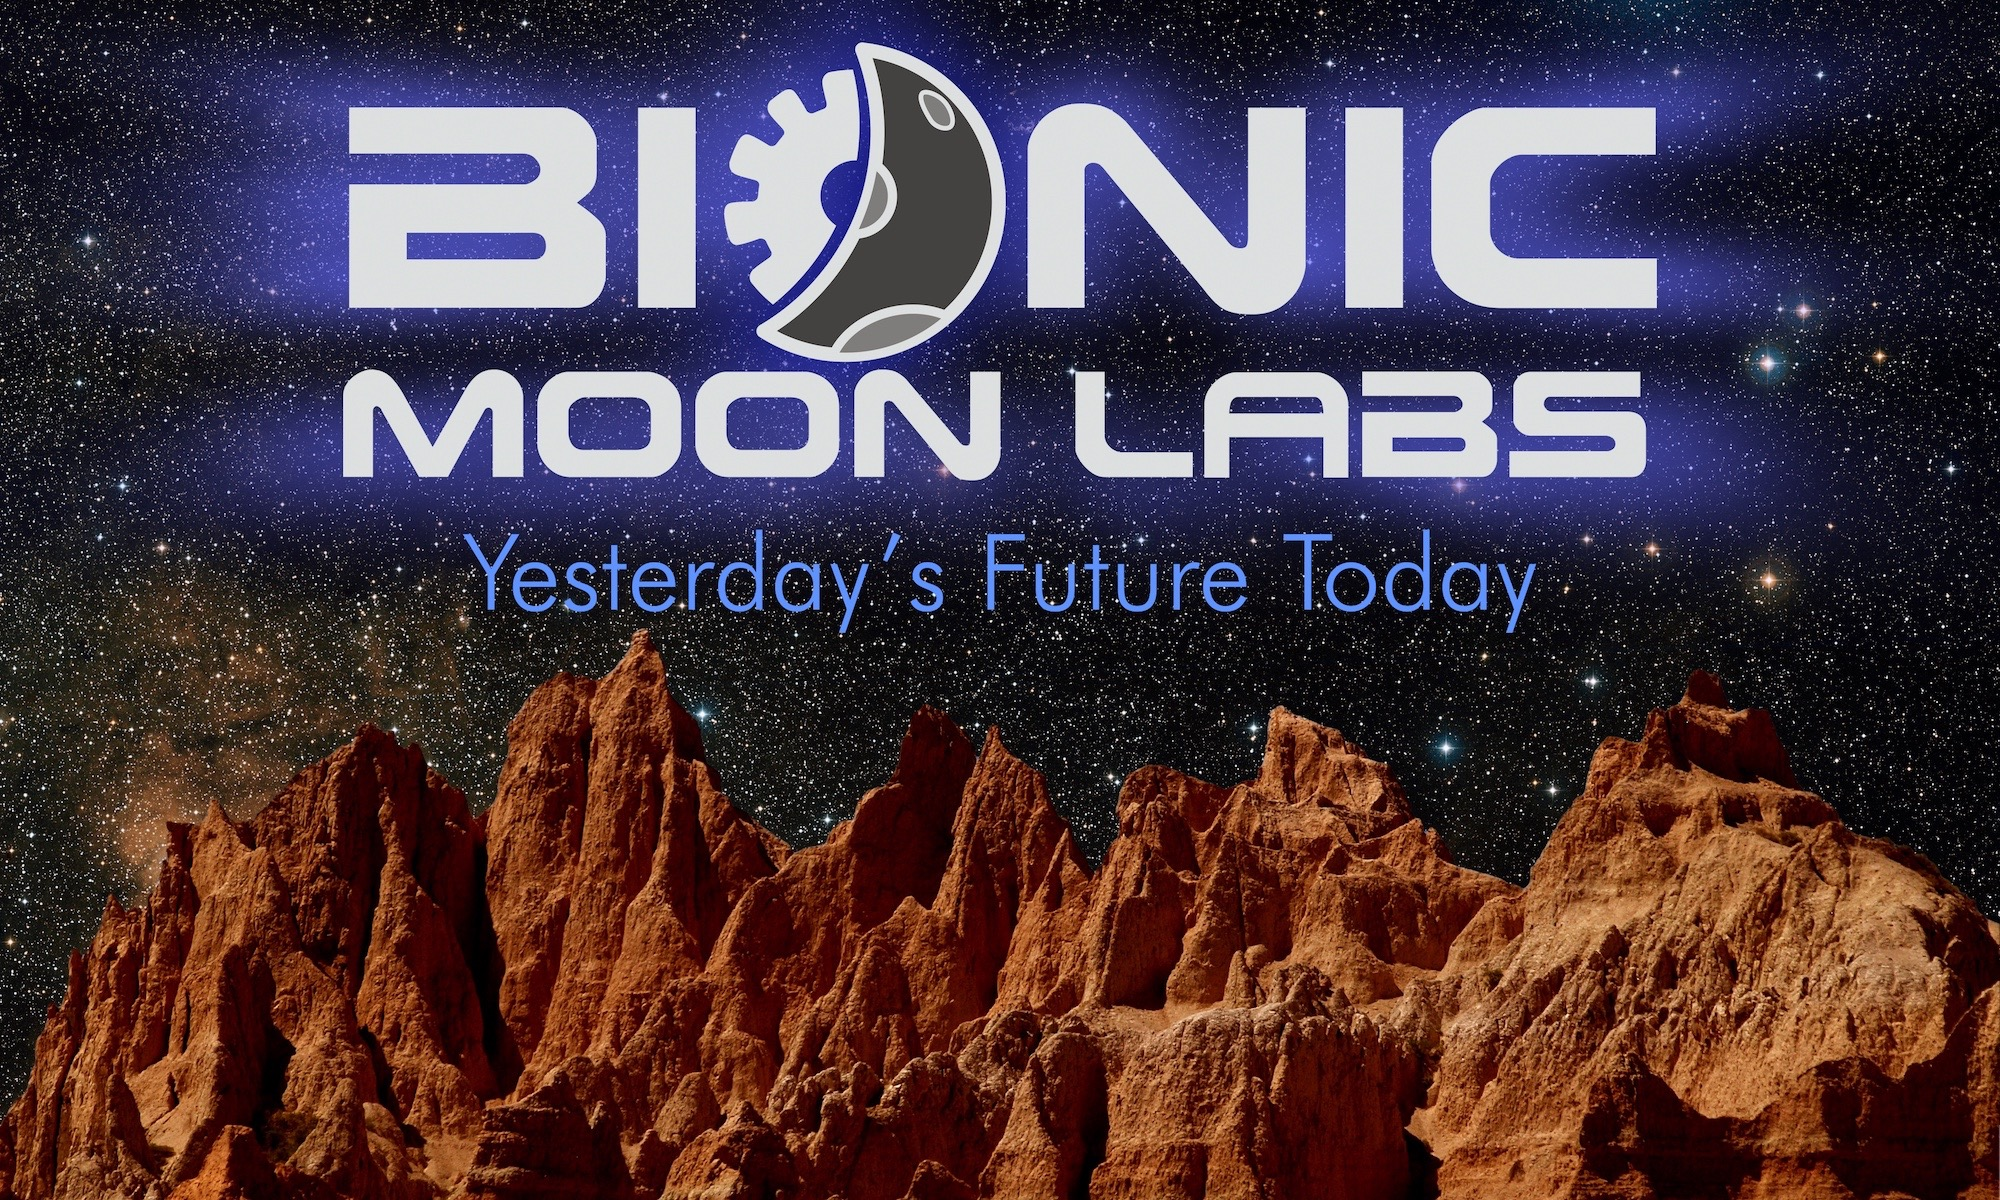 Bionic Moon Labs